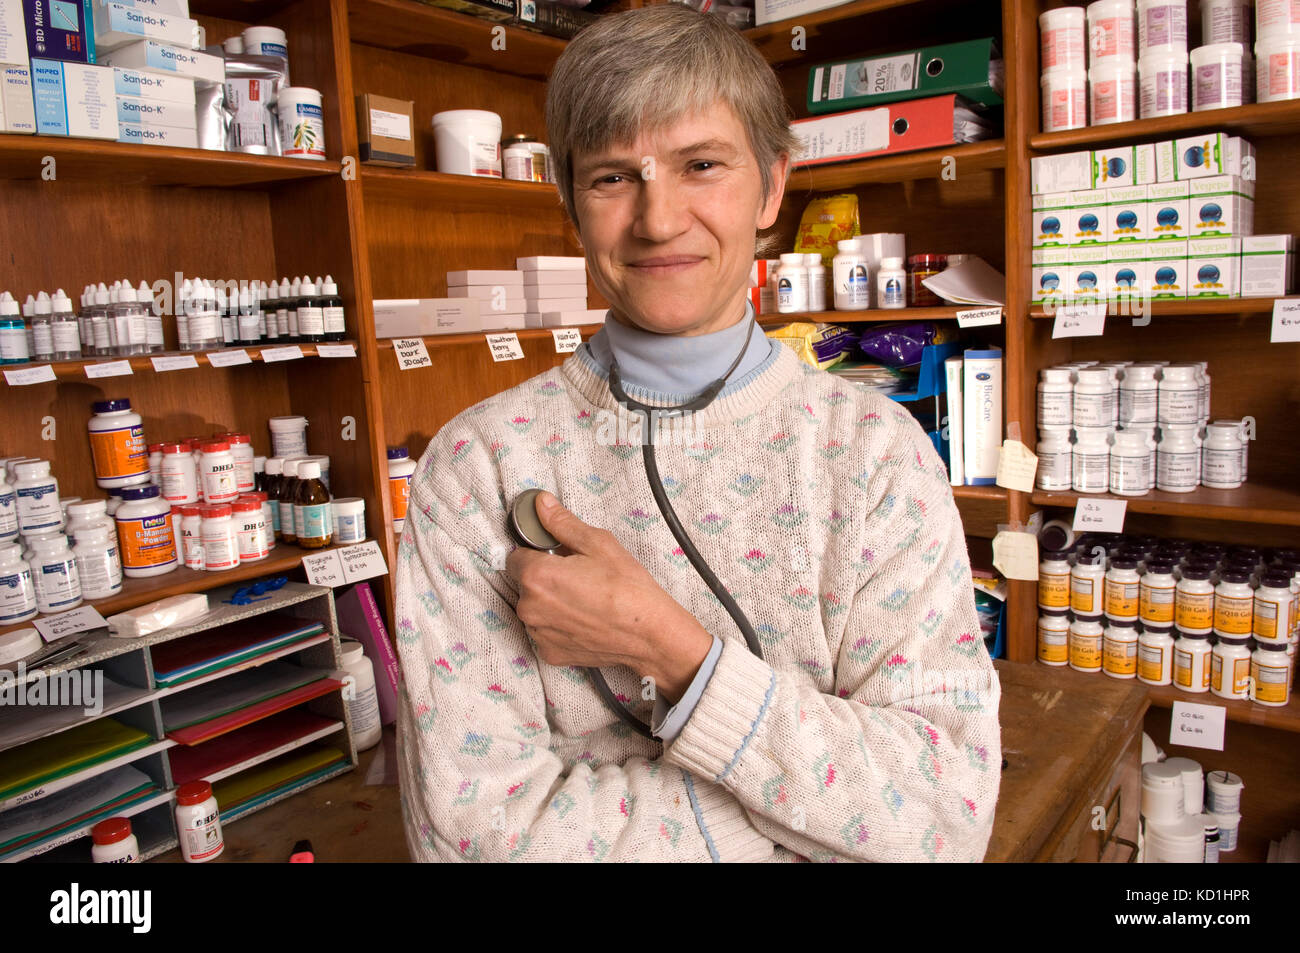 Alternative Therapie Practitioner, Dr. Sarah myhill an ihrem Haus/Praxis in Knighton, Powys, Wales. Stockbild